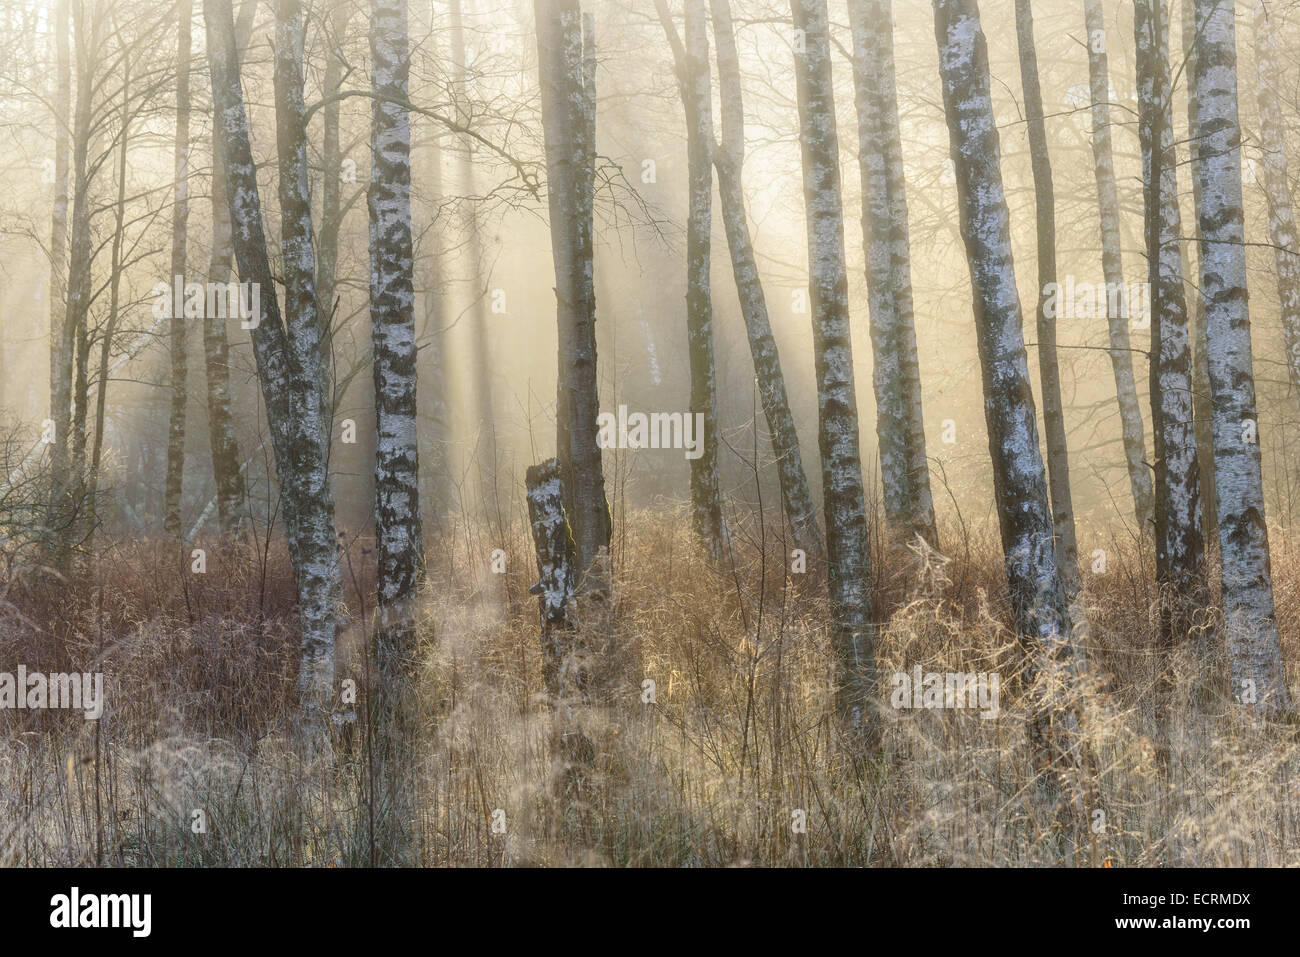 Birch trees and tall grass in a misty forest - Stock Image